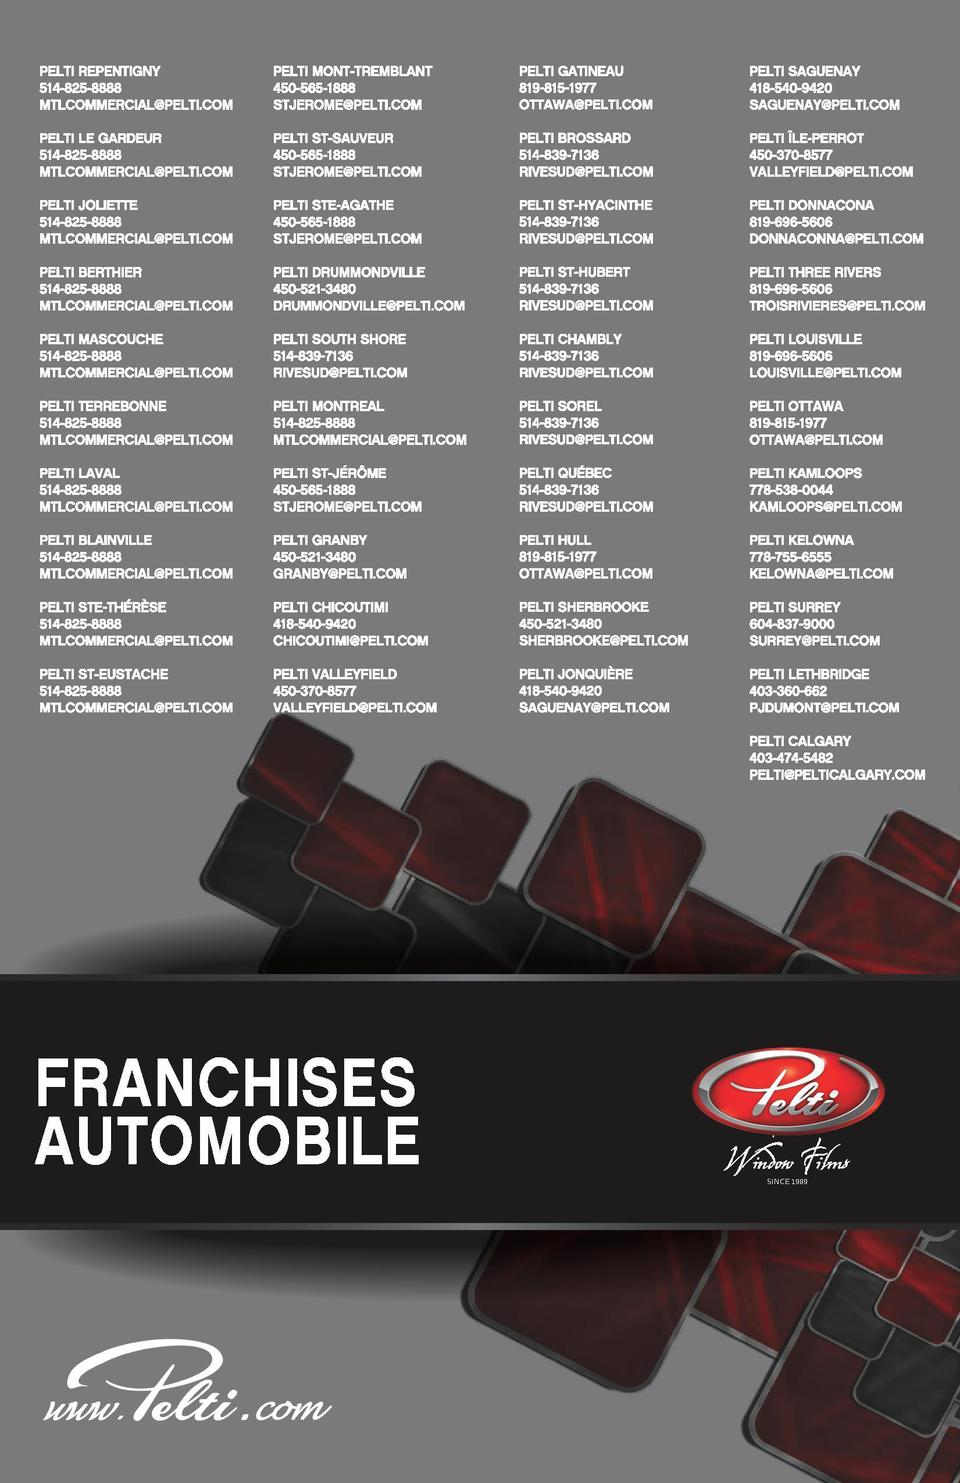 Pelti Franchise_mode Cahier_FR.pdf  1  15-09-28  21 29  C  M  J  CM  MJ  CJ  CMJ  N  SINCE 1989